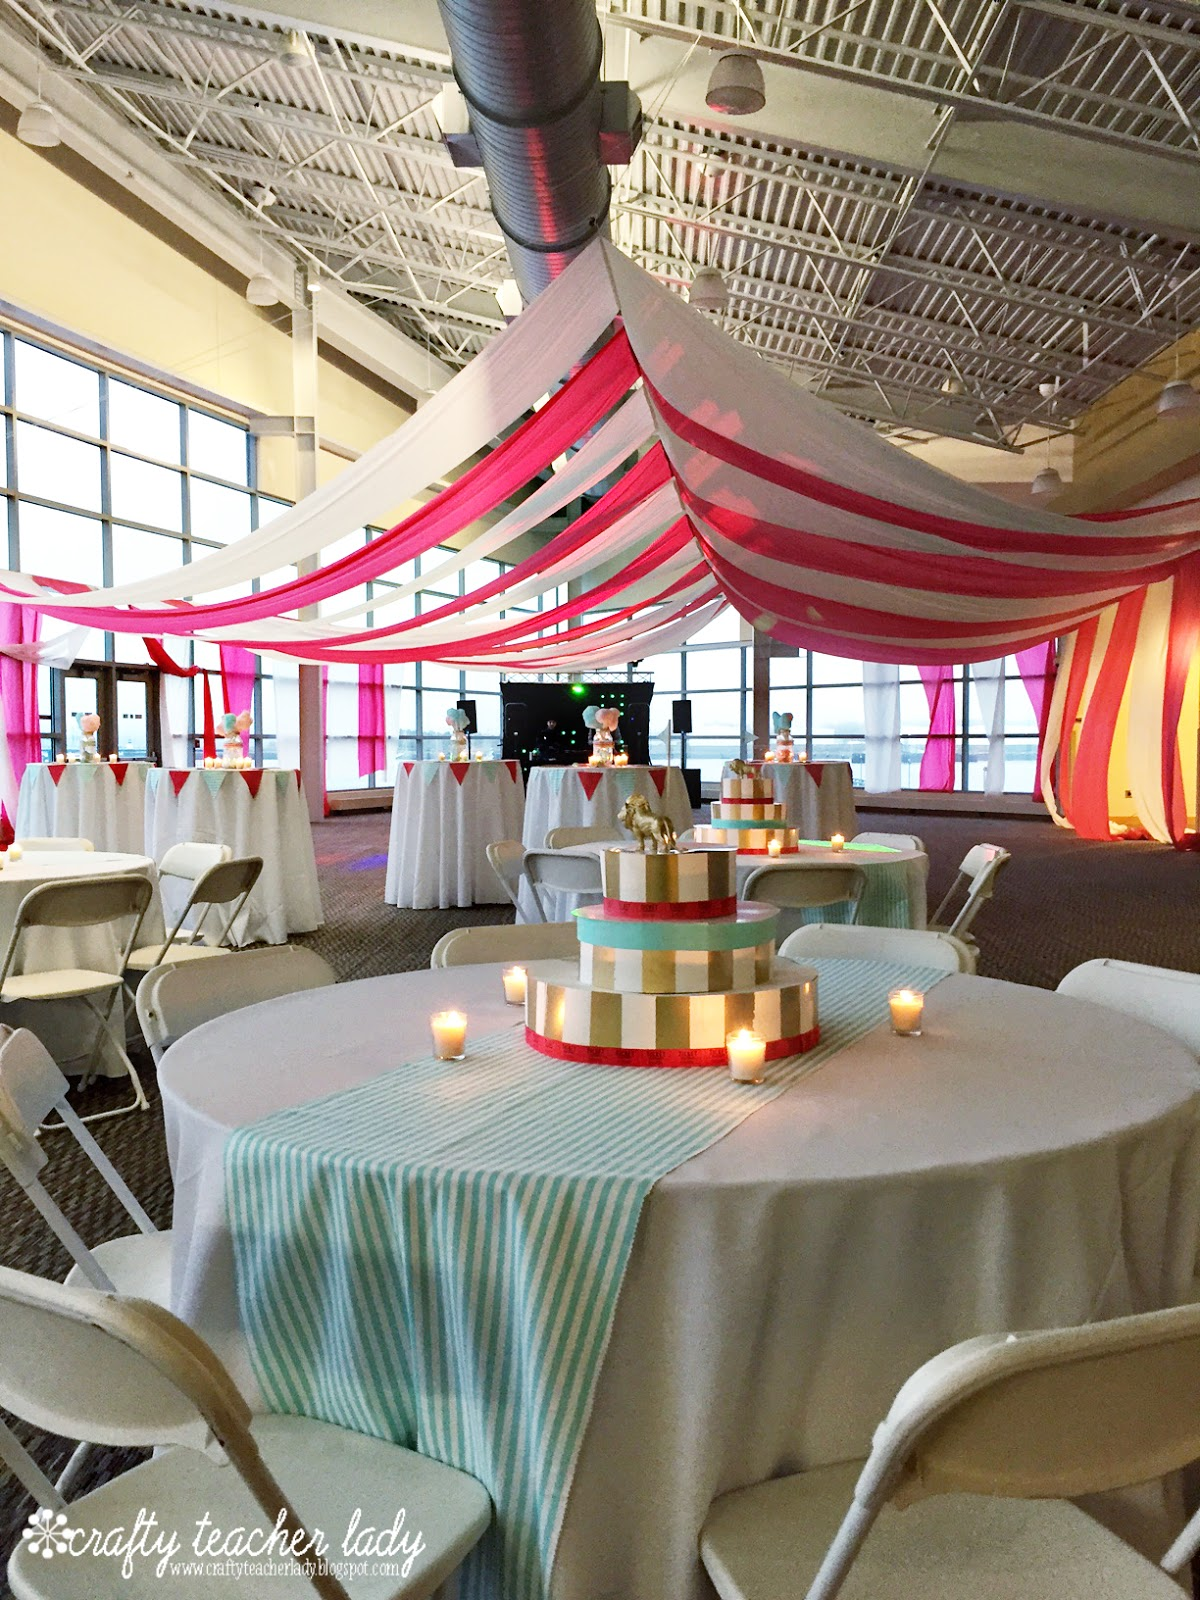 Thinking about our limited budget we got creative and crafty with our centerpieces. For the larger tables we purchased some striped fabric from WalMart to ... & Crafty Teacher Lady: Planning a DIY Circus Party